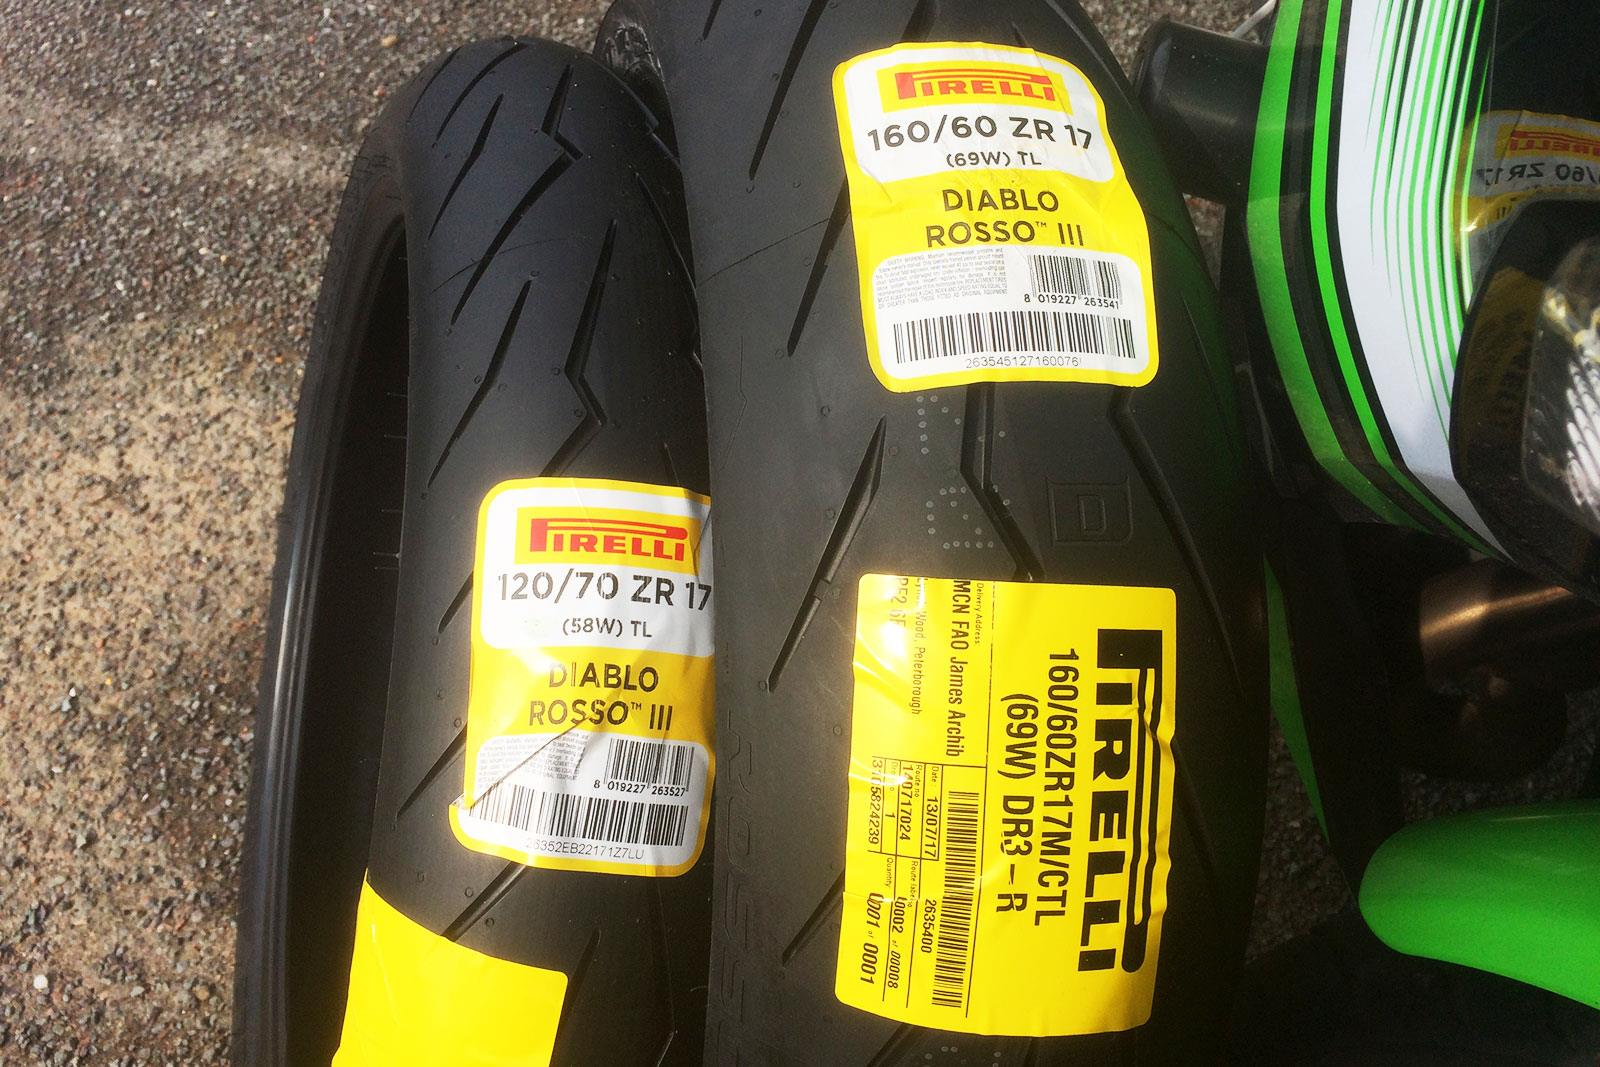 Pirelli Diablo Rosso III tyres ready to be fitted